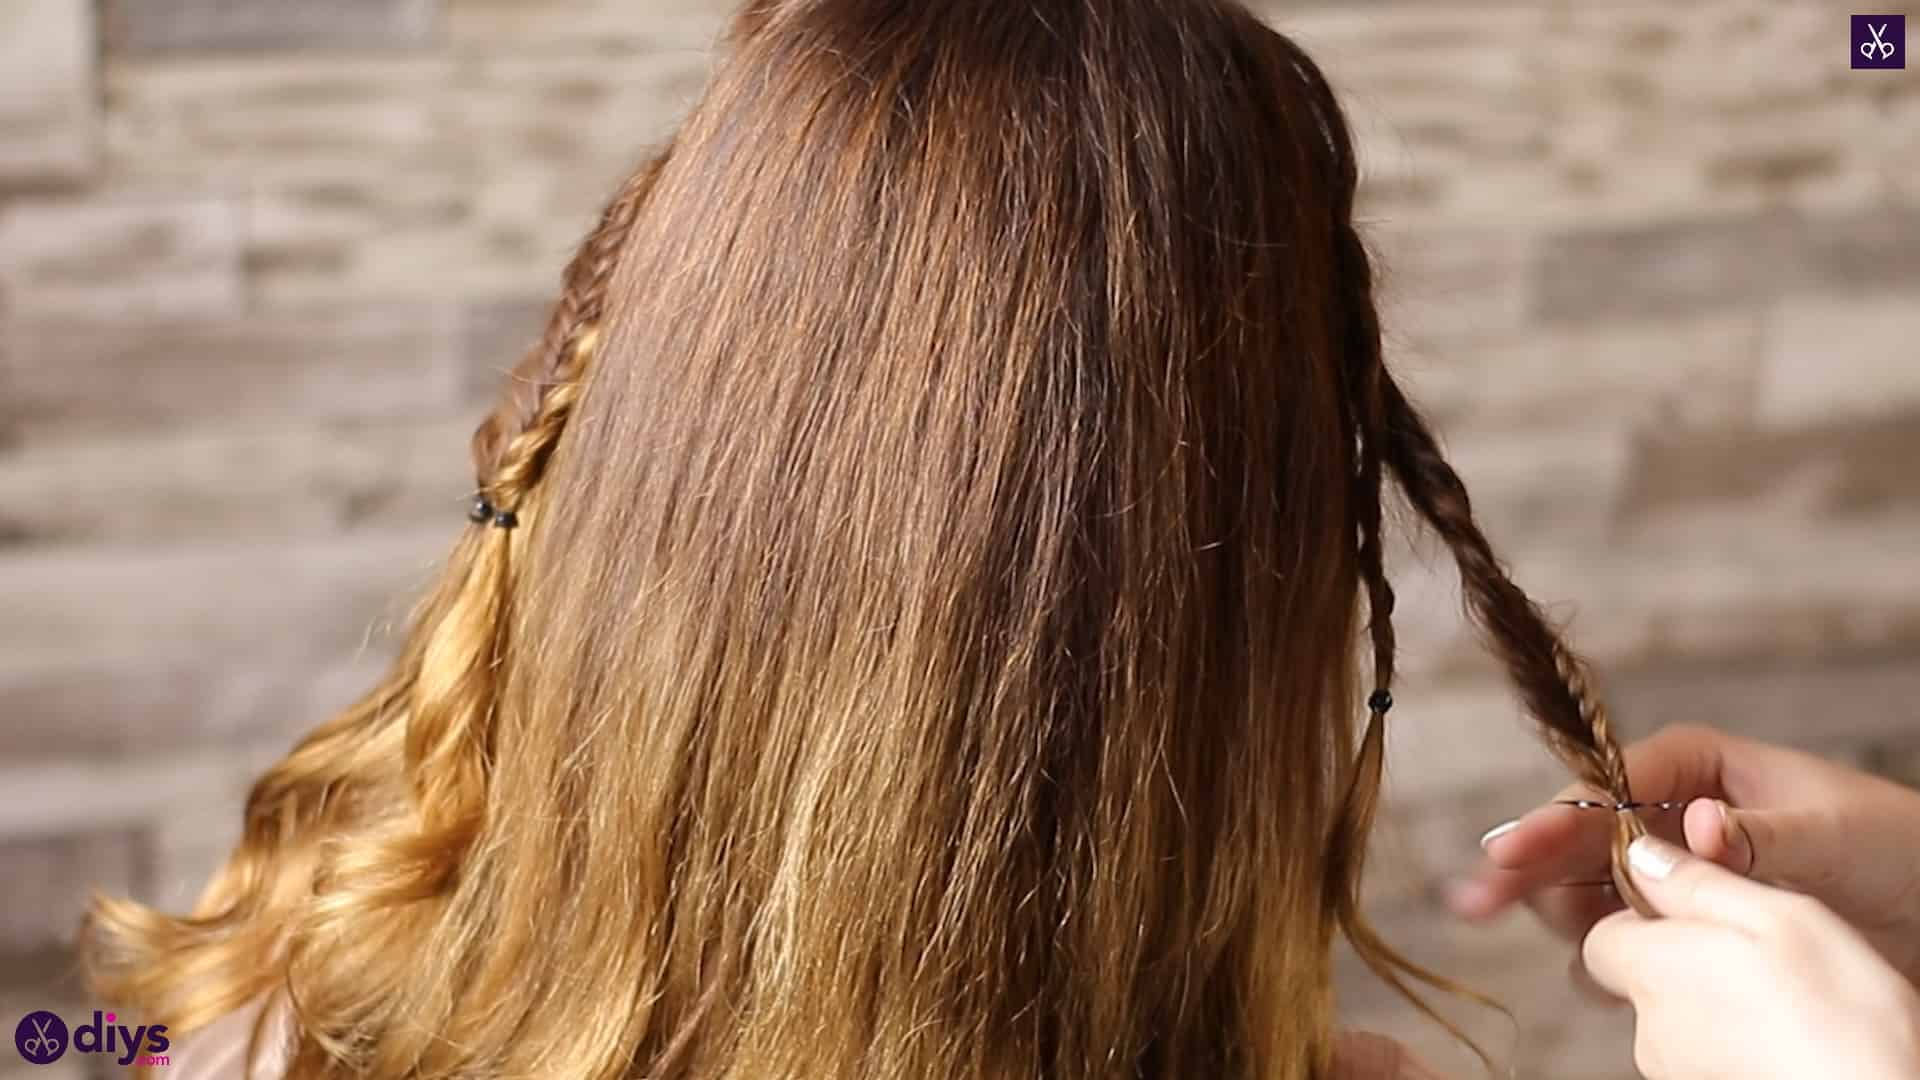 Half up, half down hairstyle for spring37